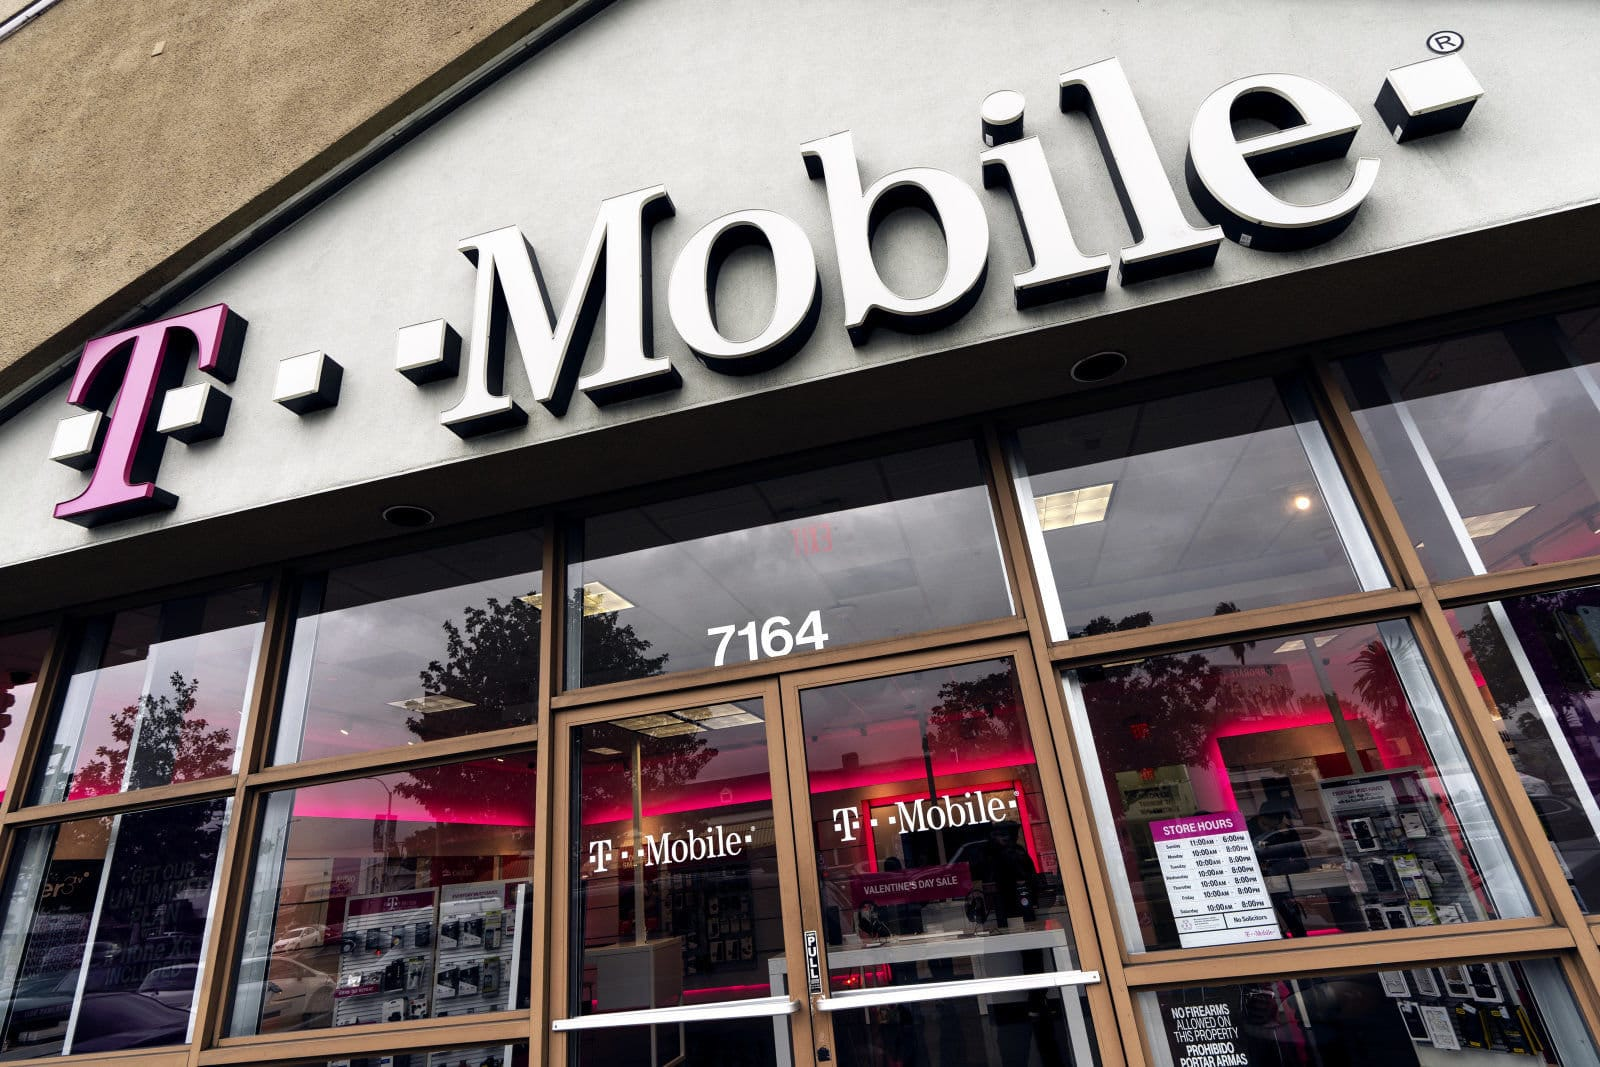 T-Mobile $15/month pre-paid 5G plan to roll out post merger with Srint